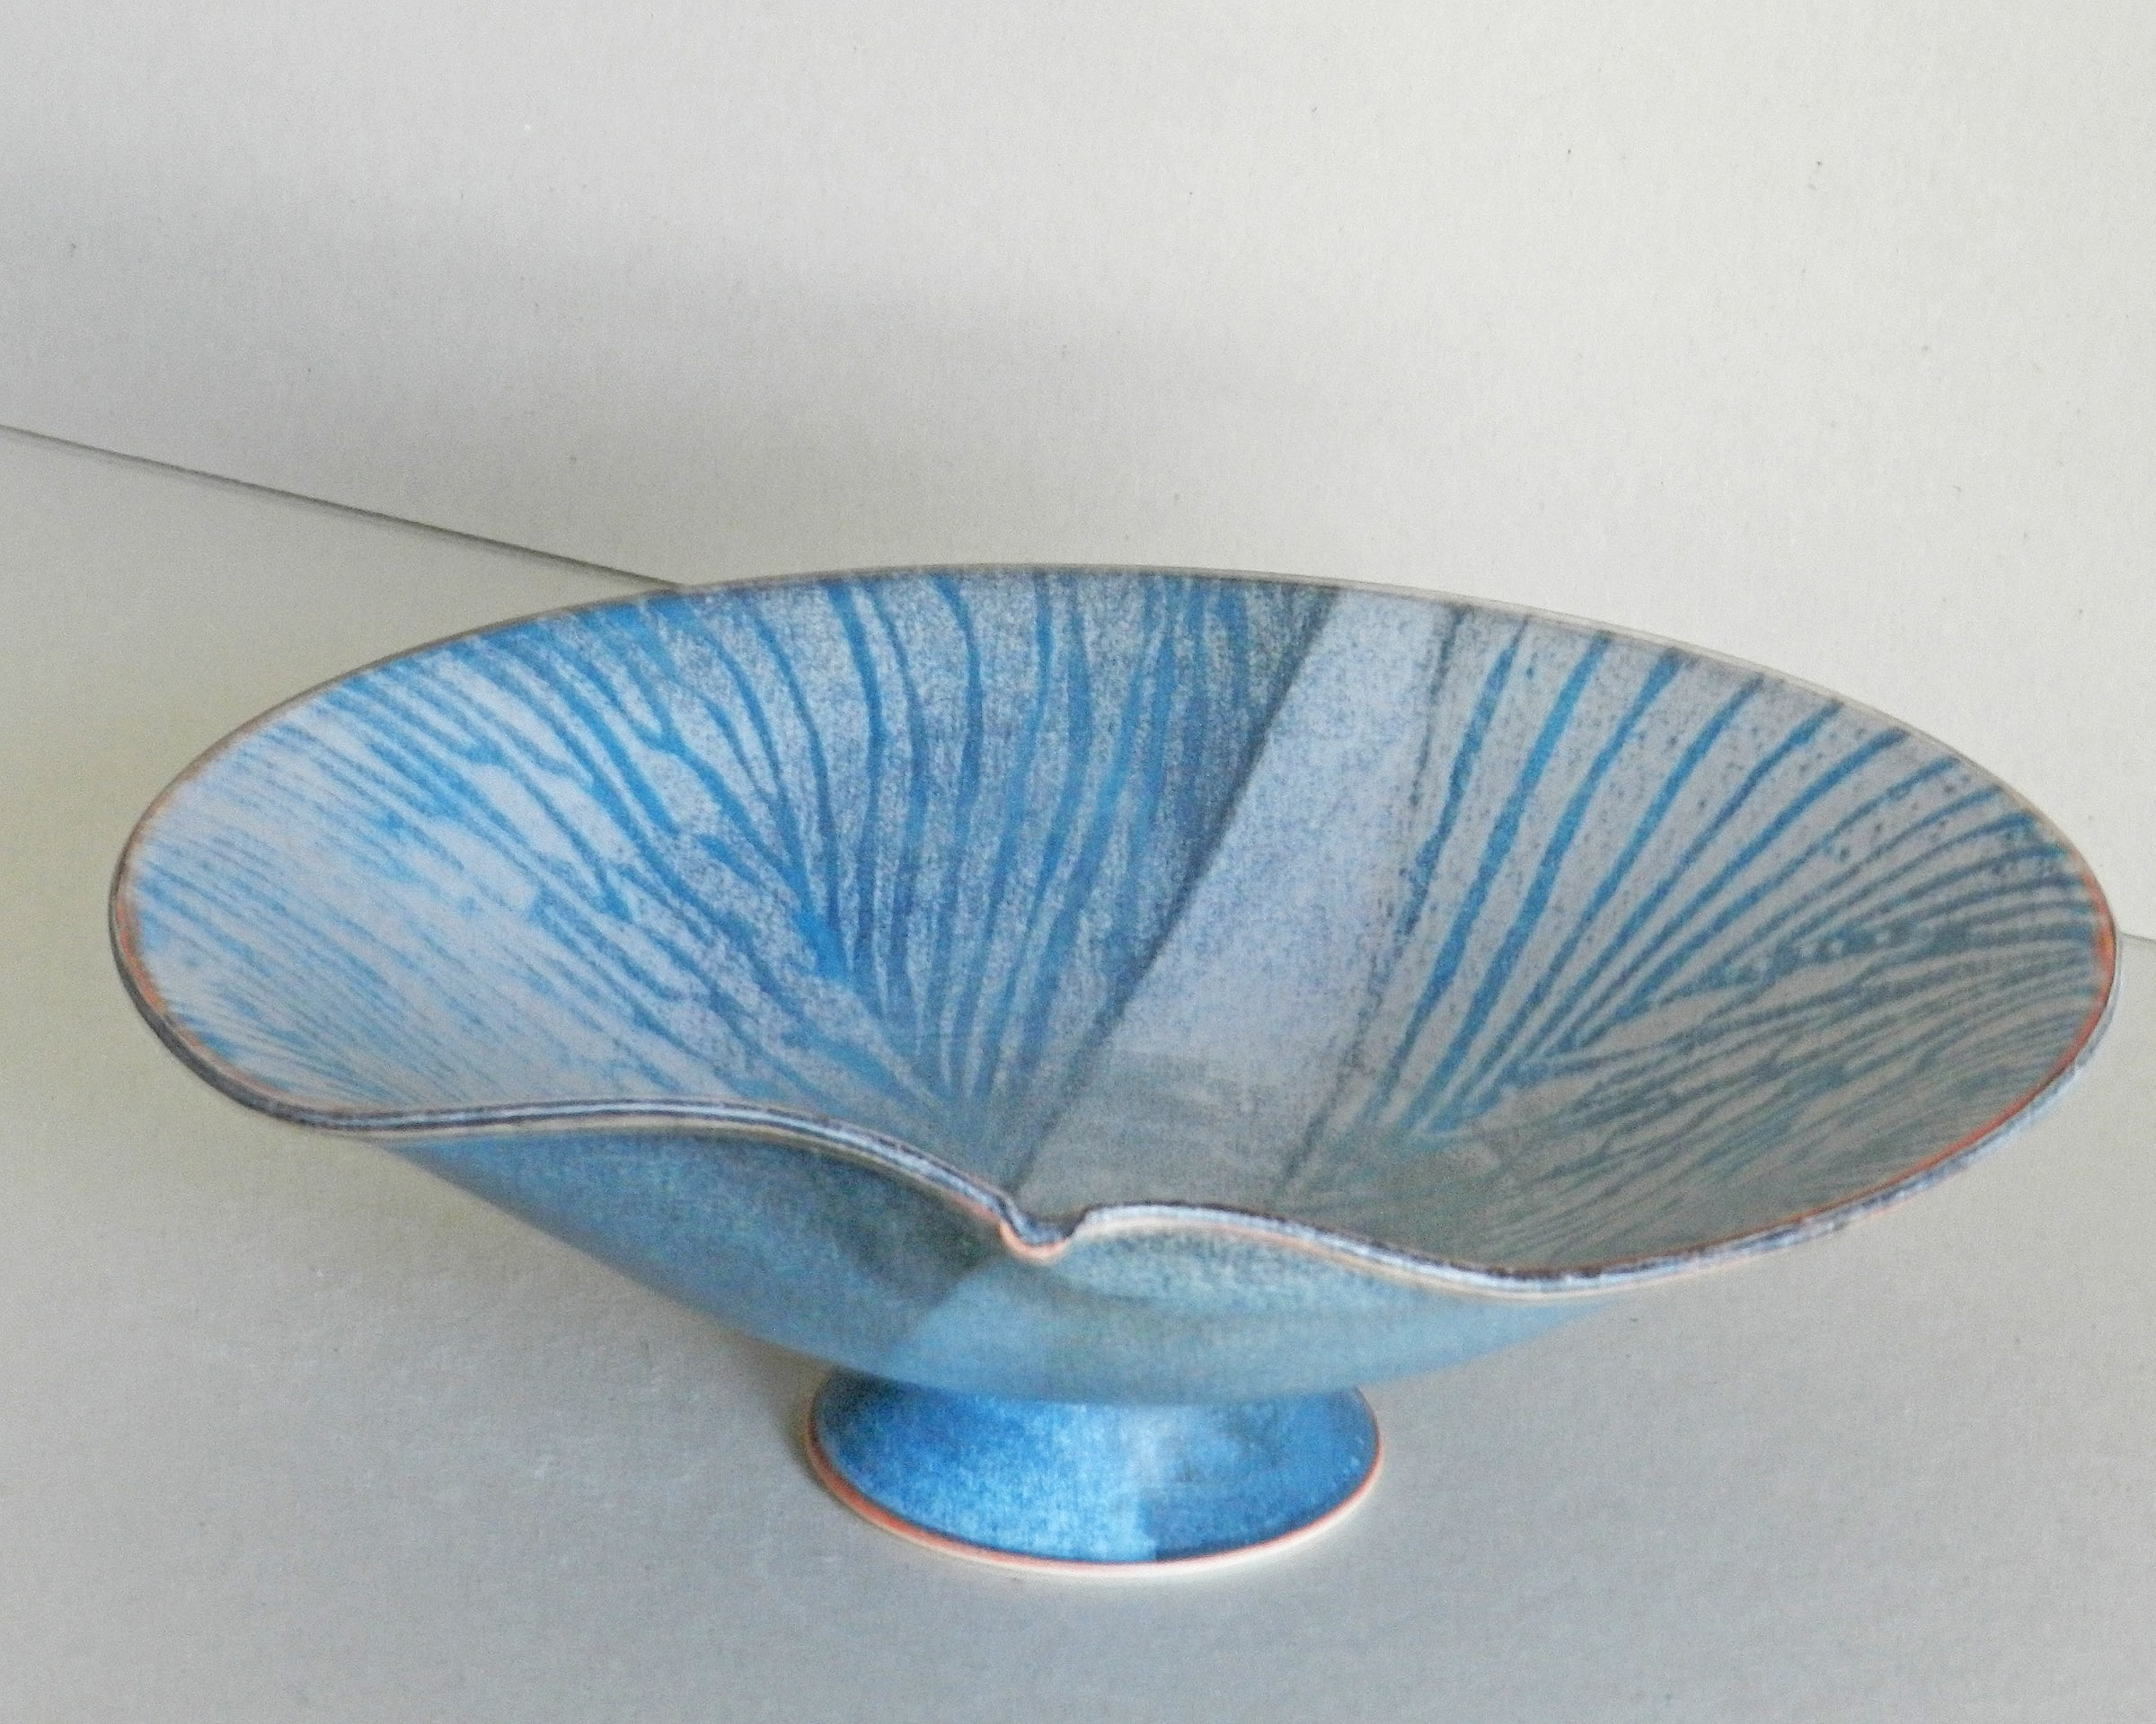 """<span class=""""link fancybox-details-link""""><a href=""""/artists/243-christine-feiler/works/6866-christine-feiler-altered-bowl-2013/"""">View Detail Page</a></span><div class=""""artist""""><strong>Christine Feiler</strong></div> b. 1948 <div class=""""title""""><em>Altered Bowl</em>, 2013</div> <div class=""""signed_and_dated"""">Ceramicist mark on base</div> <div class=""""medium"""">Stoneware with enamels</div><div class=""""copyright_line"""">Copyright The Artist</div>"""